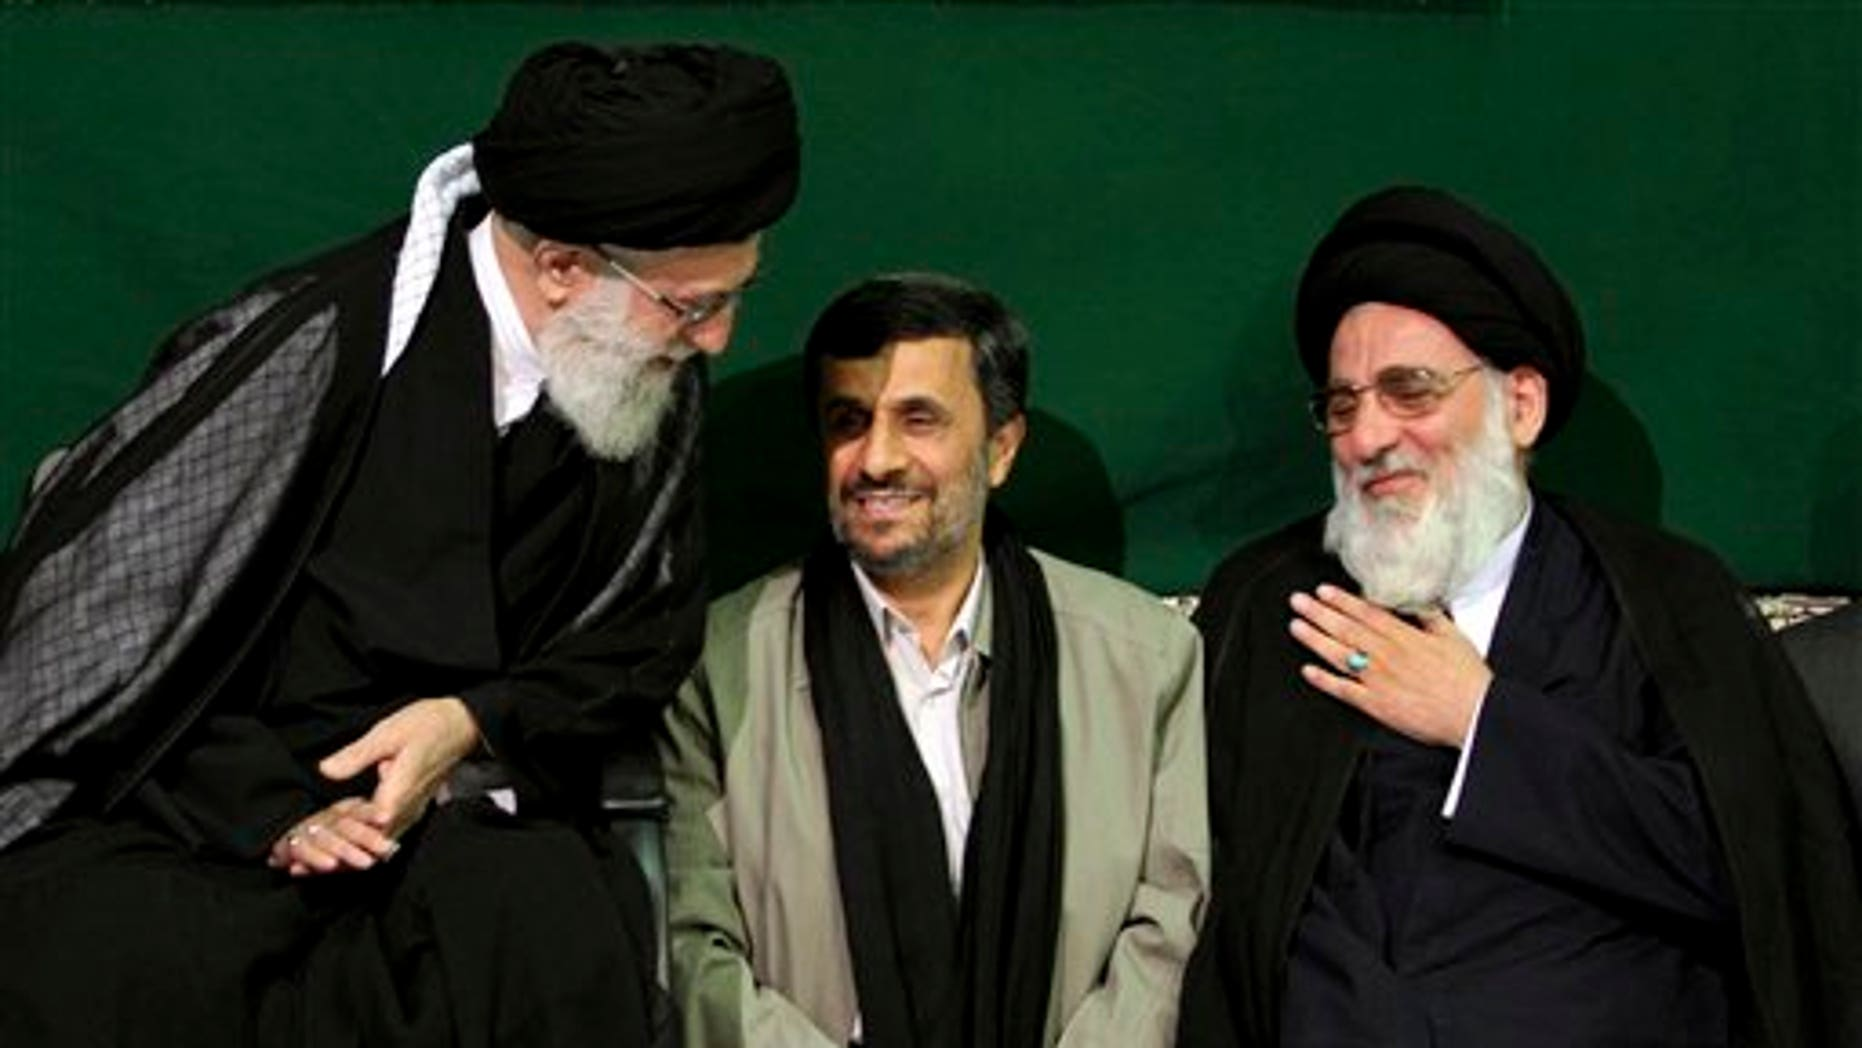 May 7, 2011: Iranian supreme leader Ayatollah Ali Khamenei, left, greets former Judiciary chief Ayatollah Mahmoud Hashemi Shahroudi, right, as President Mahmoud Ahmadinejad sits at center, during a religious ceremony, in Tehran, Iran.